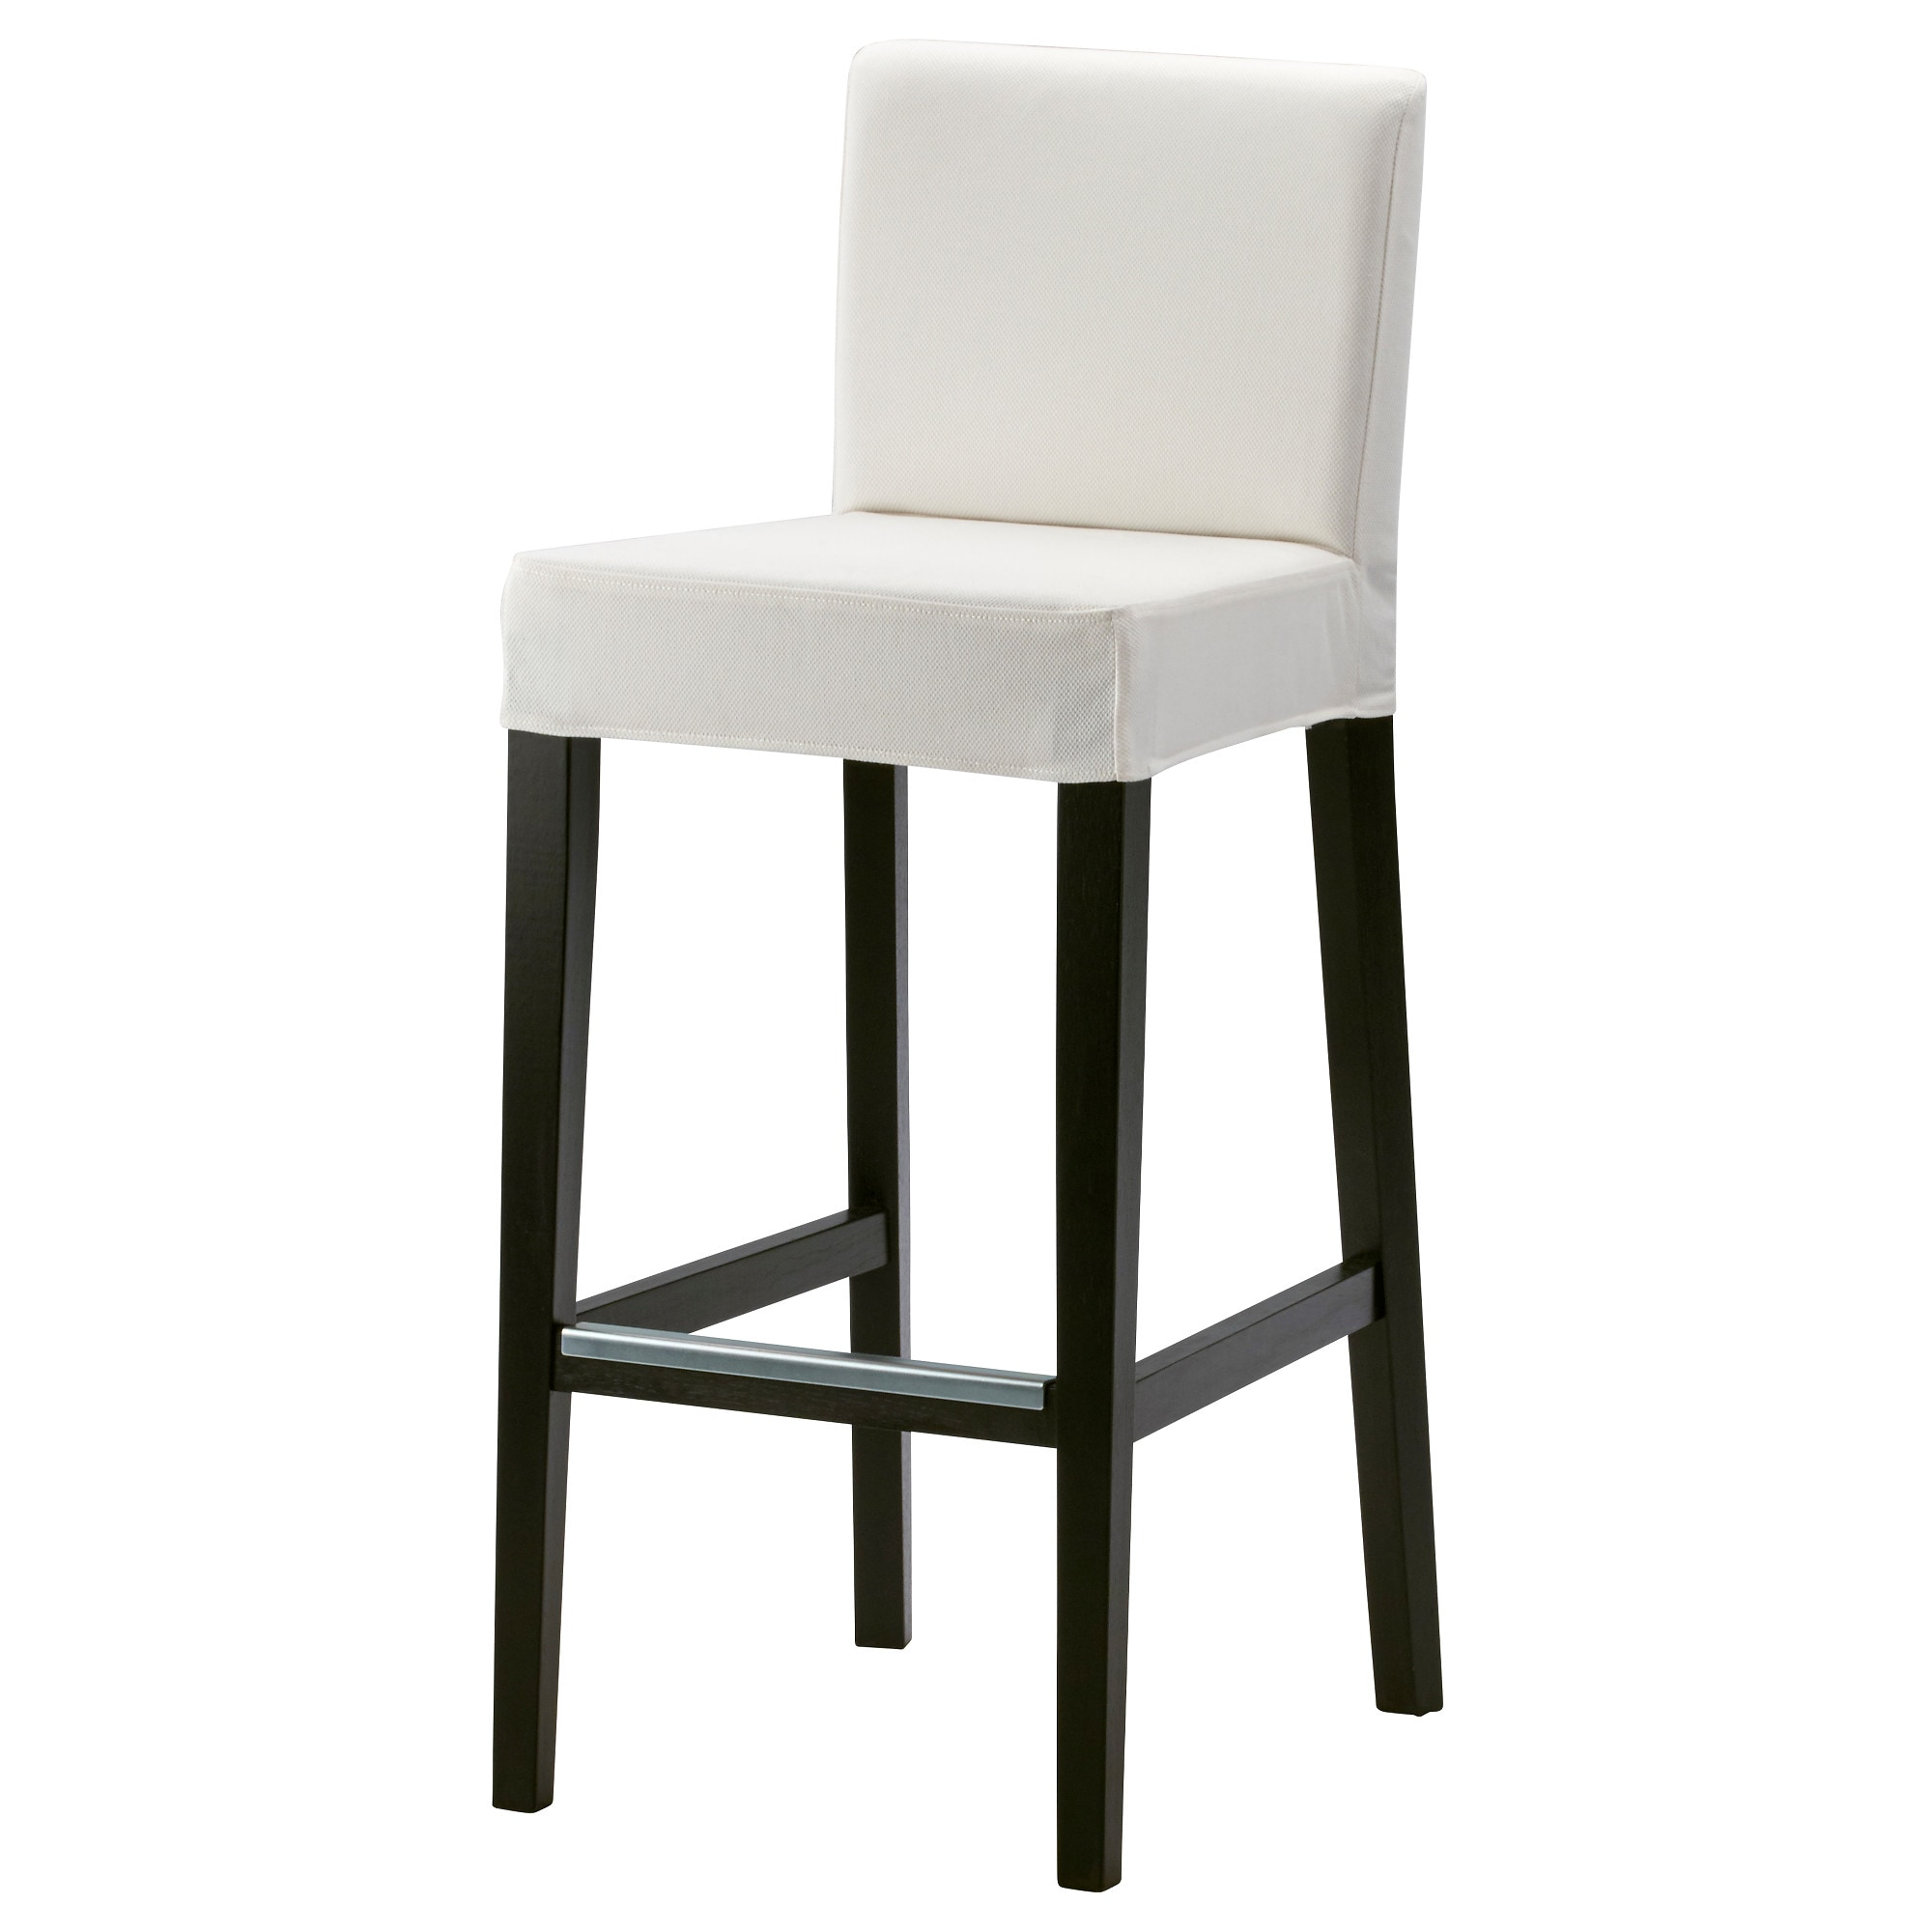 HENRIKSDAL bar stool with backrest brown-black Gräsbo white Tested for 220  sc 1 st  Ikea & Bar tables u0026 chairs - Bar tables u0026 Bar stools - IKEA islam-shia.org